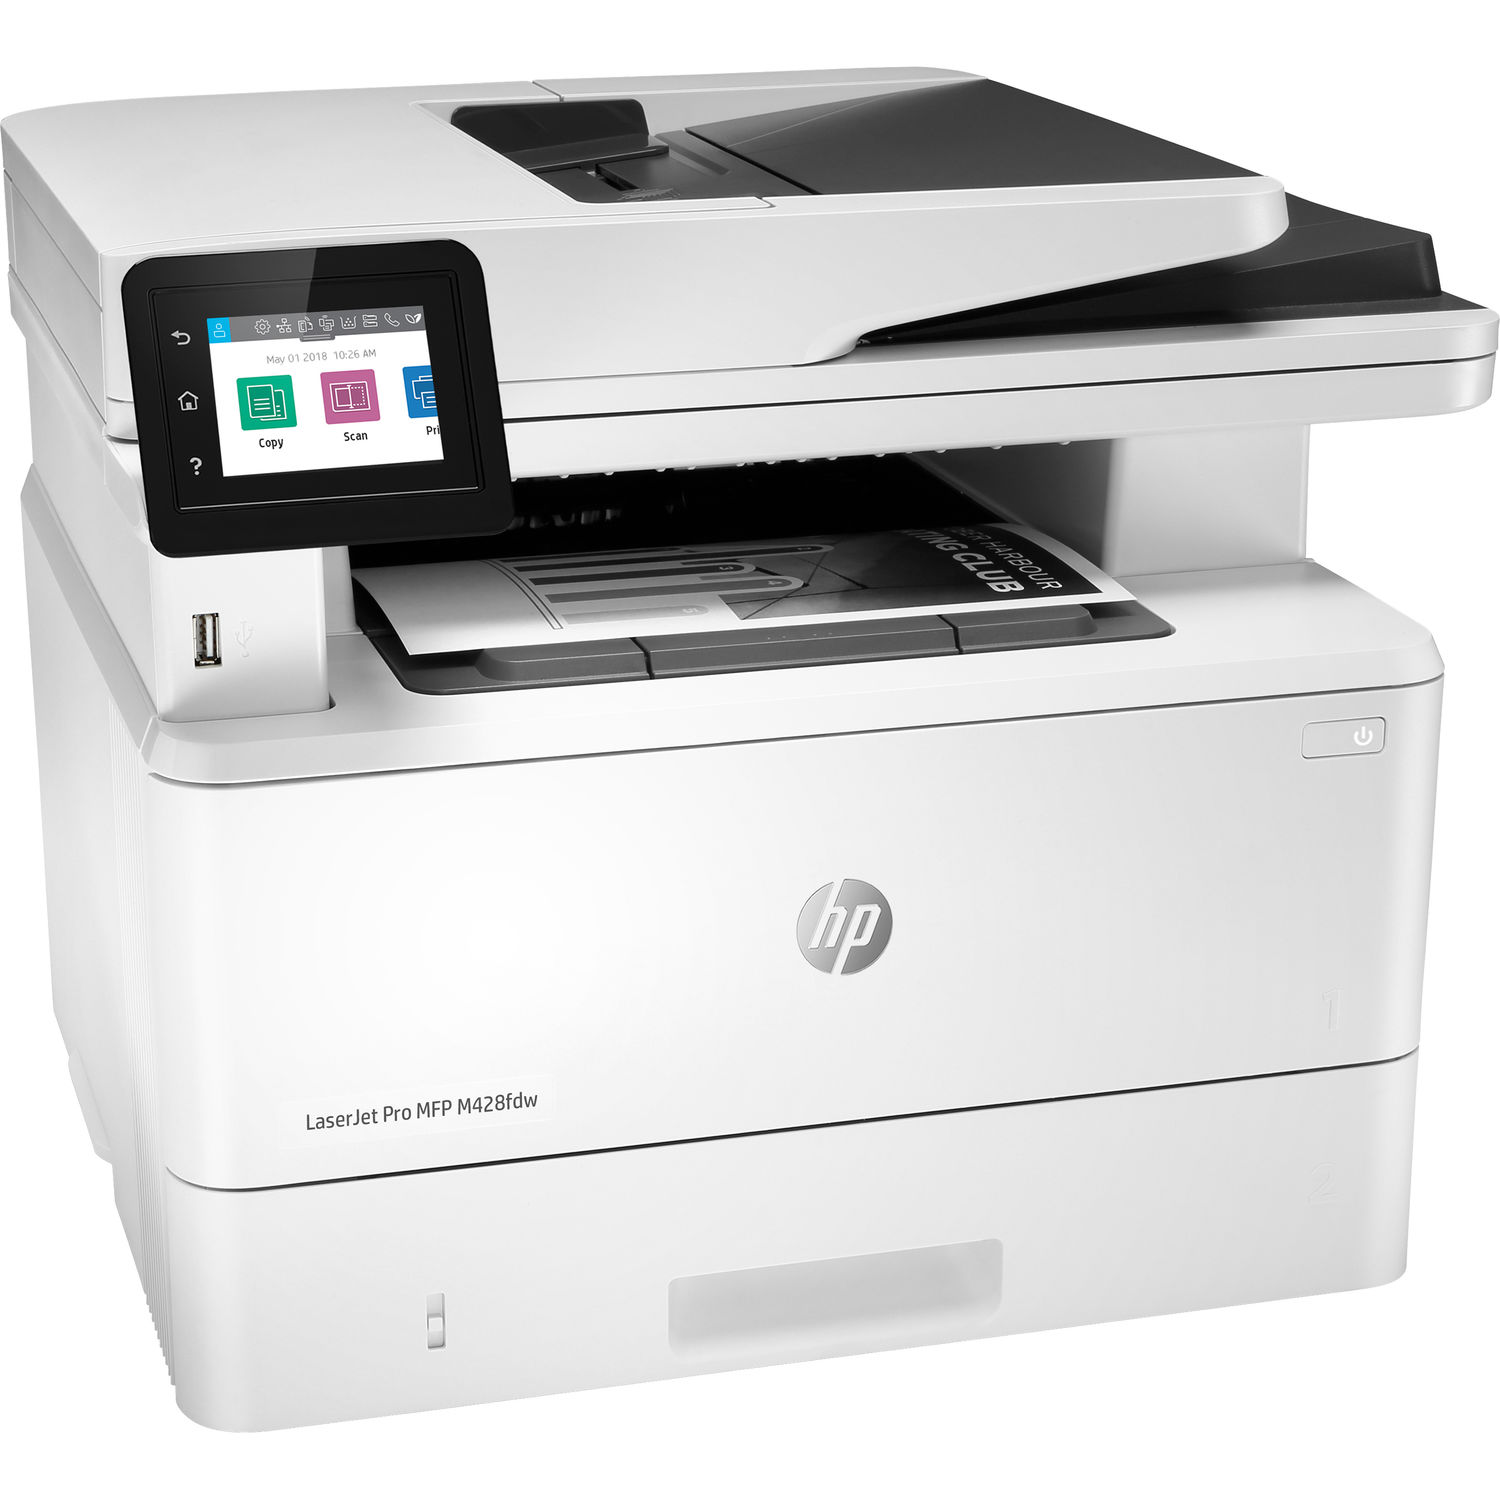 HP LaserJet Pro M428fdw All-in-One Monochrome Laser Printer